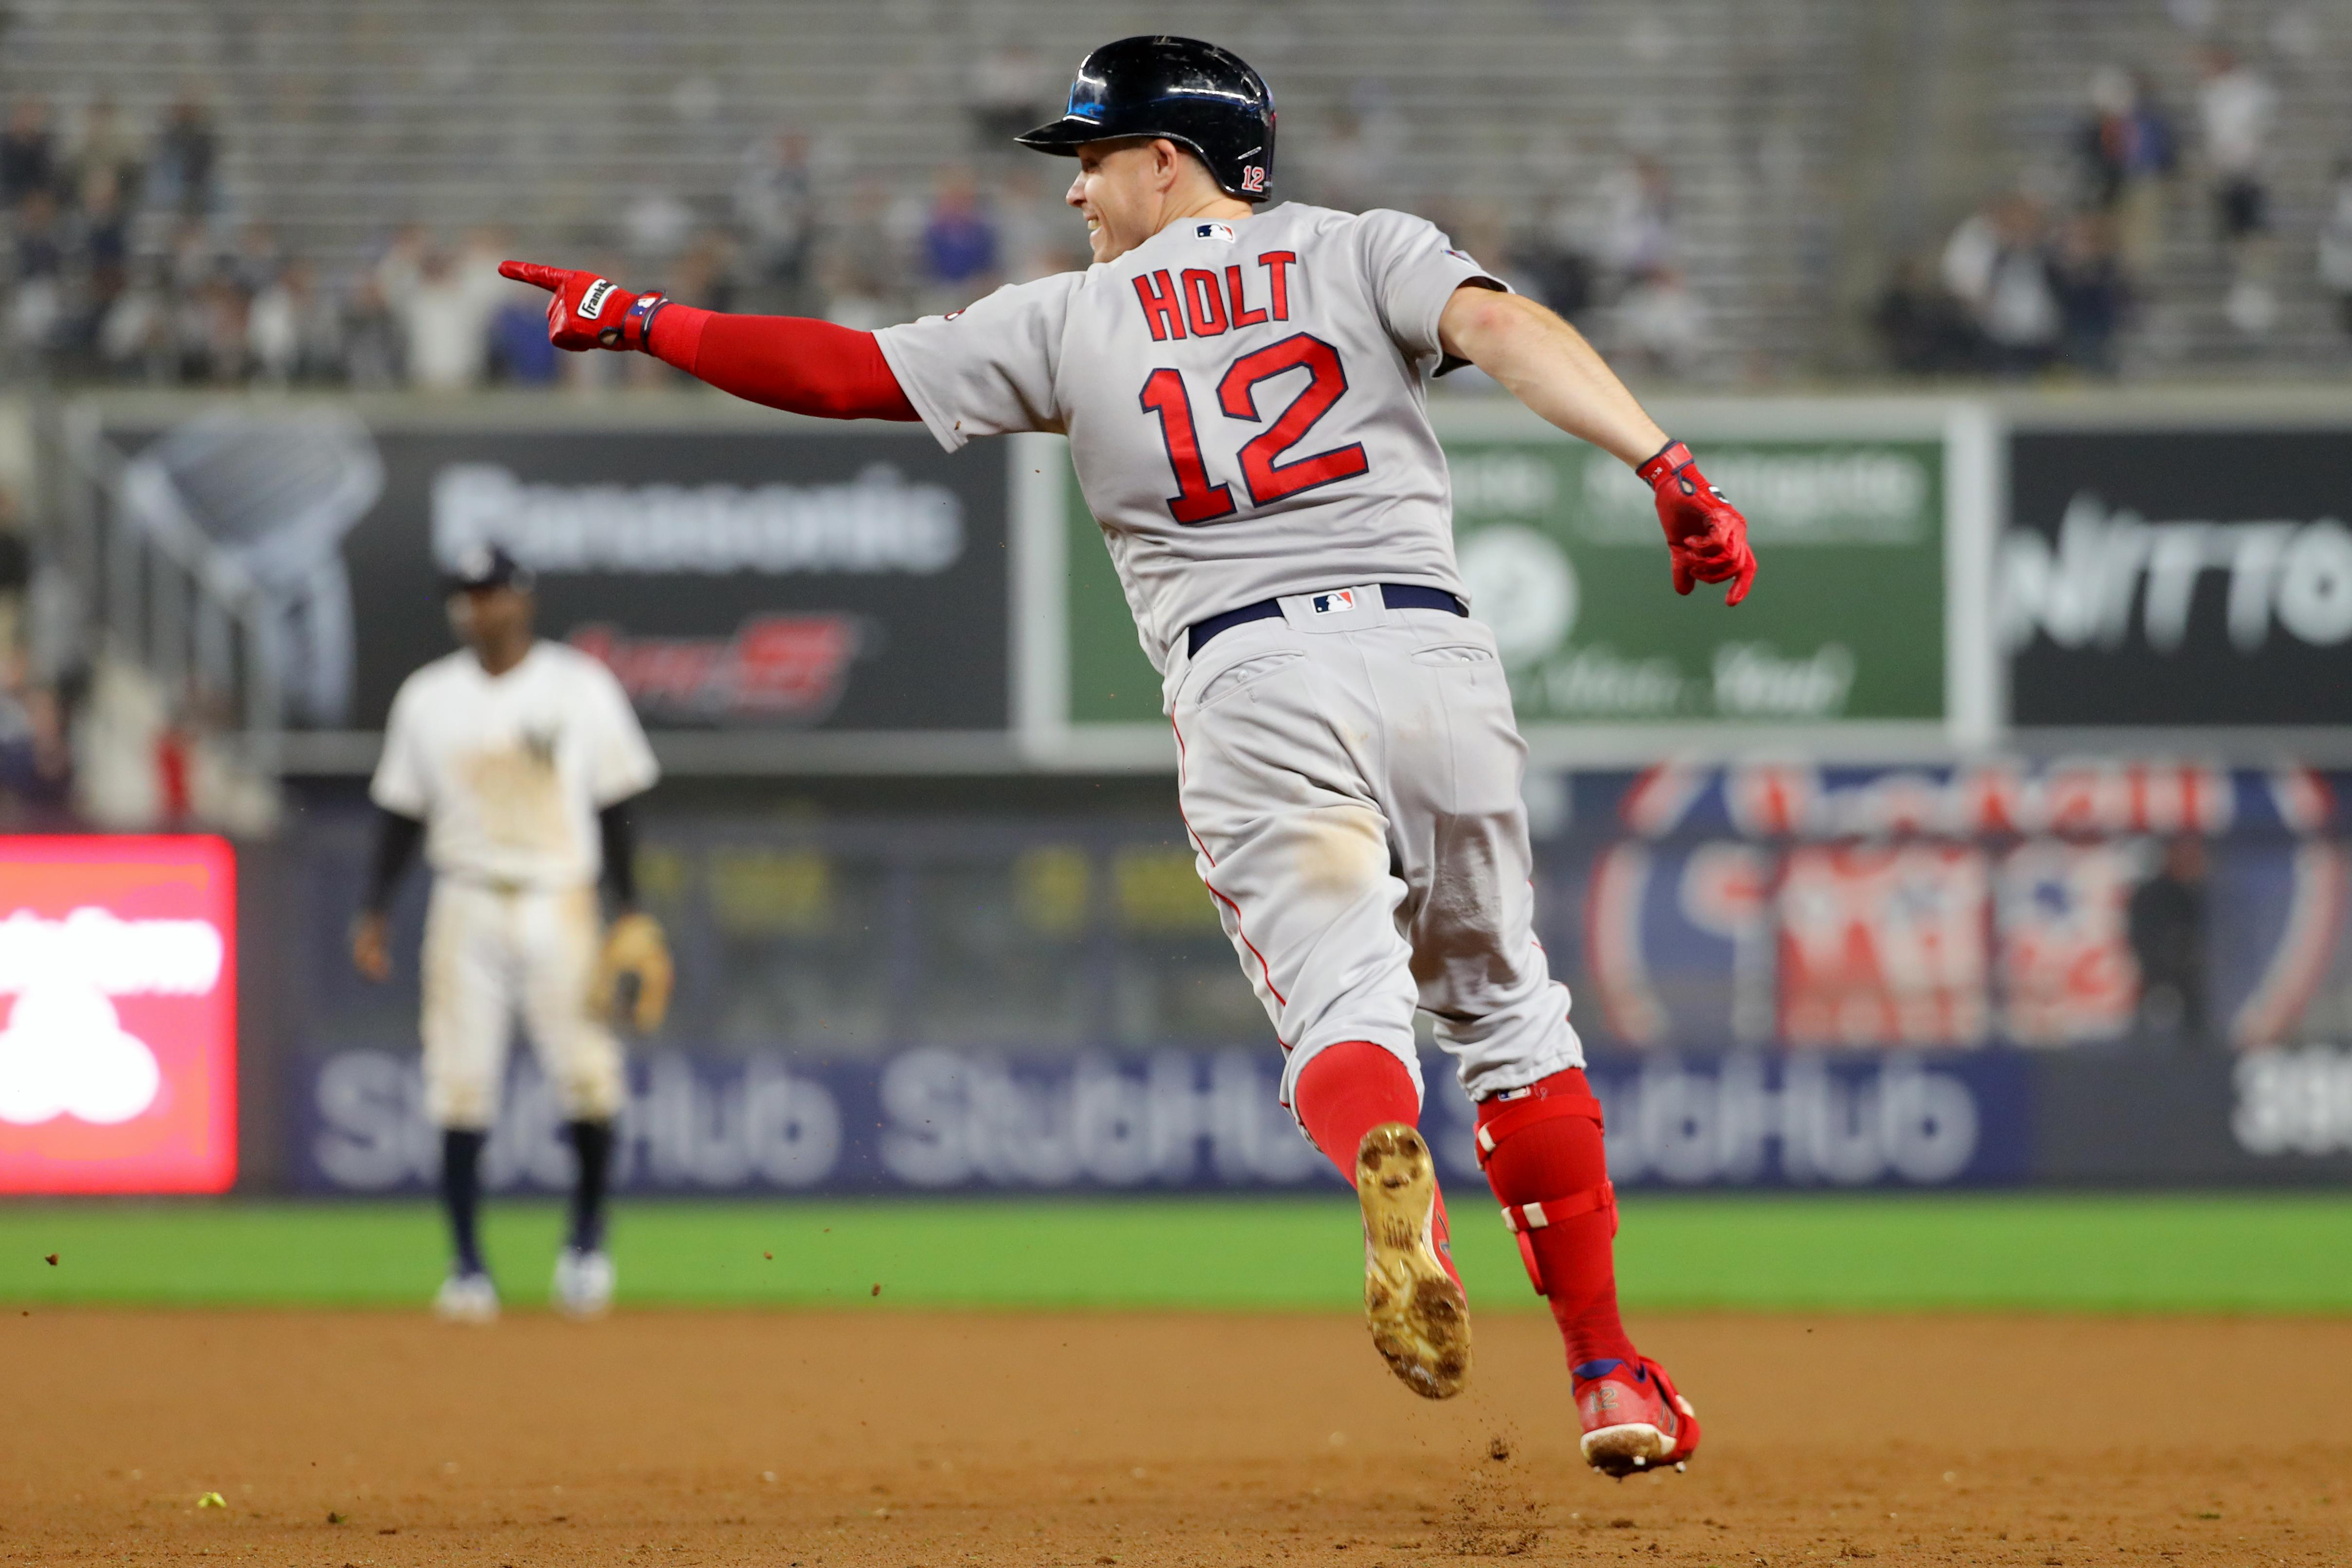 sale retailer 62e6c f2bb4 Brock Holt hits for 1st cycle in postseason history for Red Sox